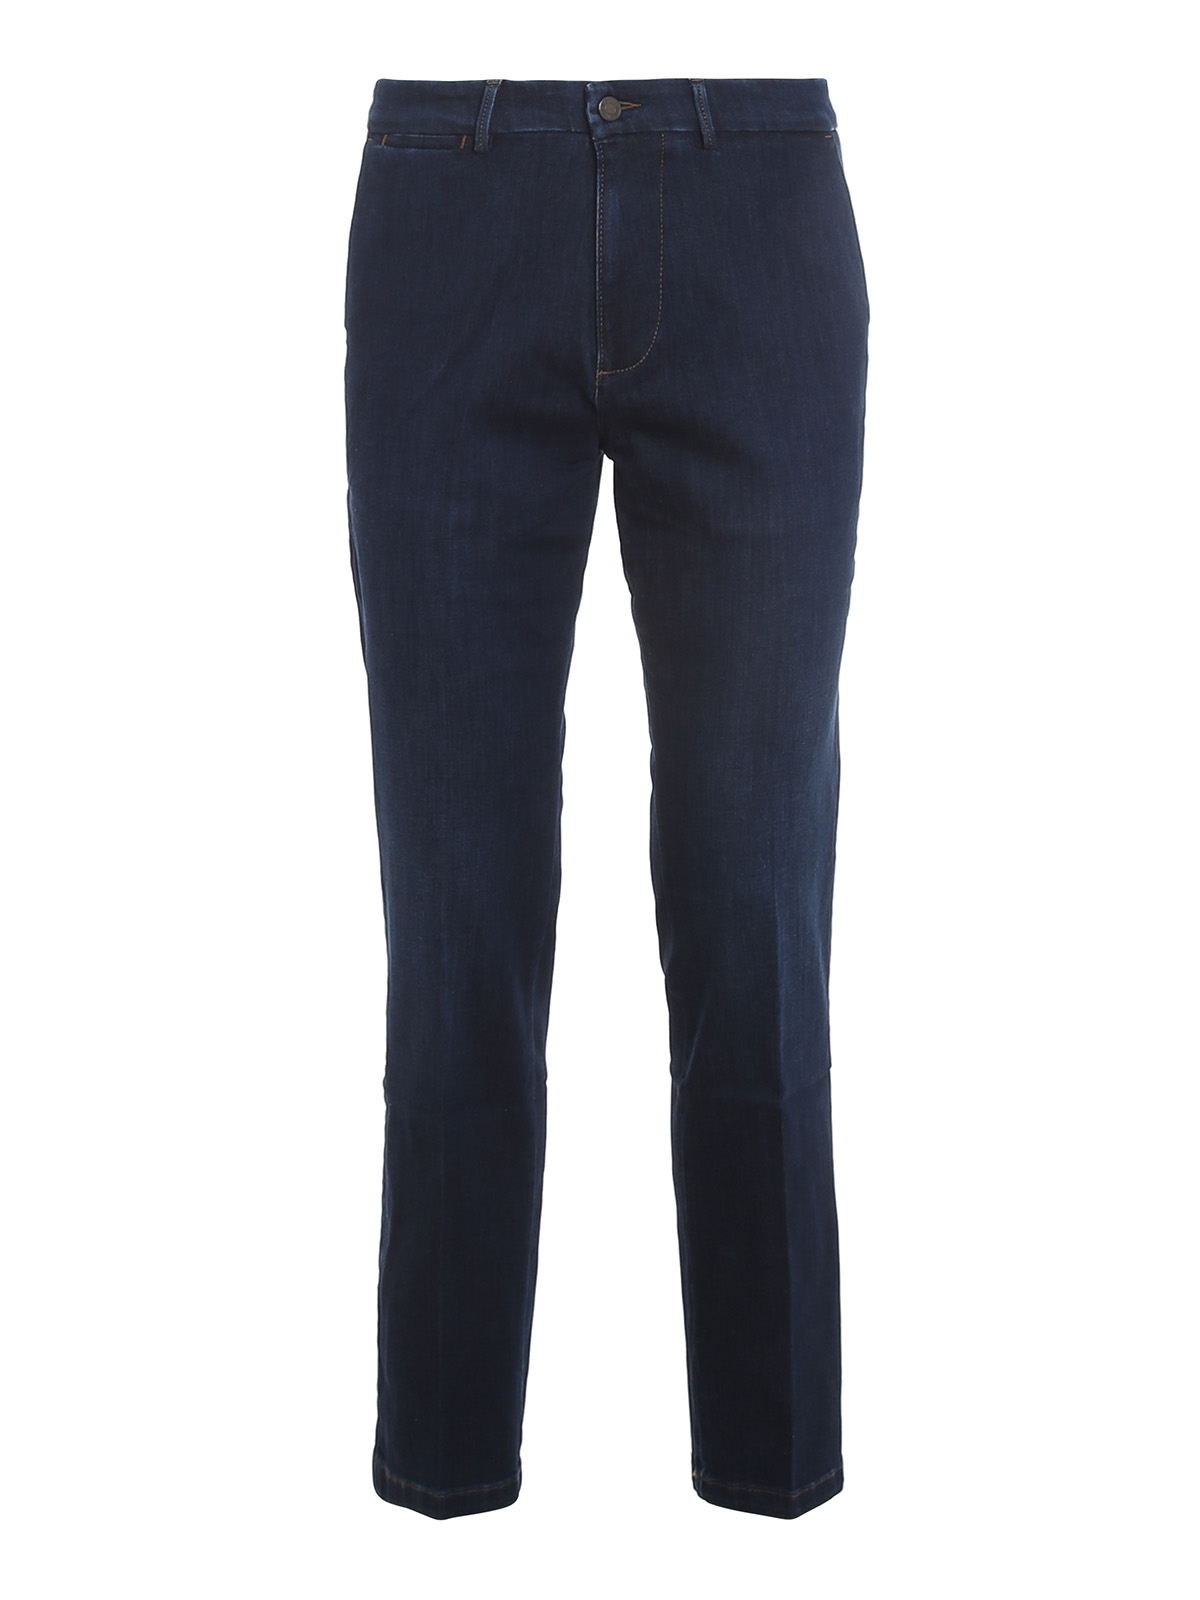 7 For All Mankind SLIMMY CHINO TROUSERS